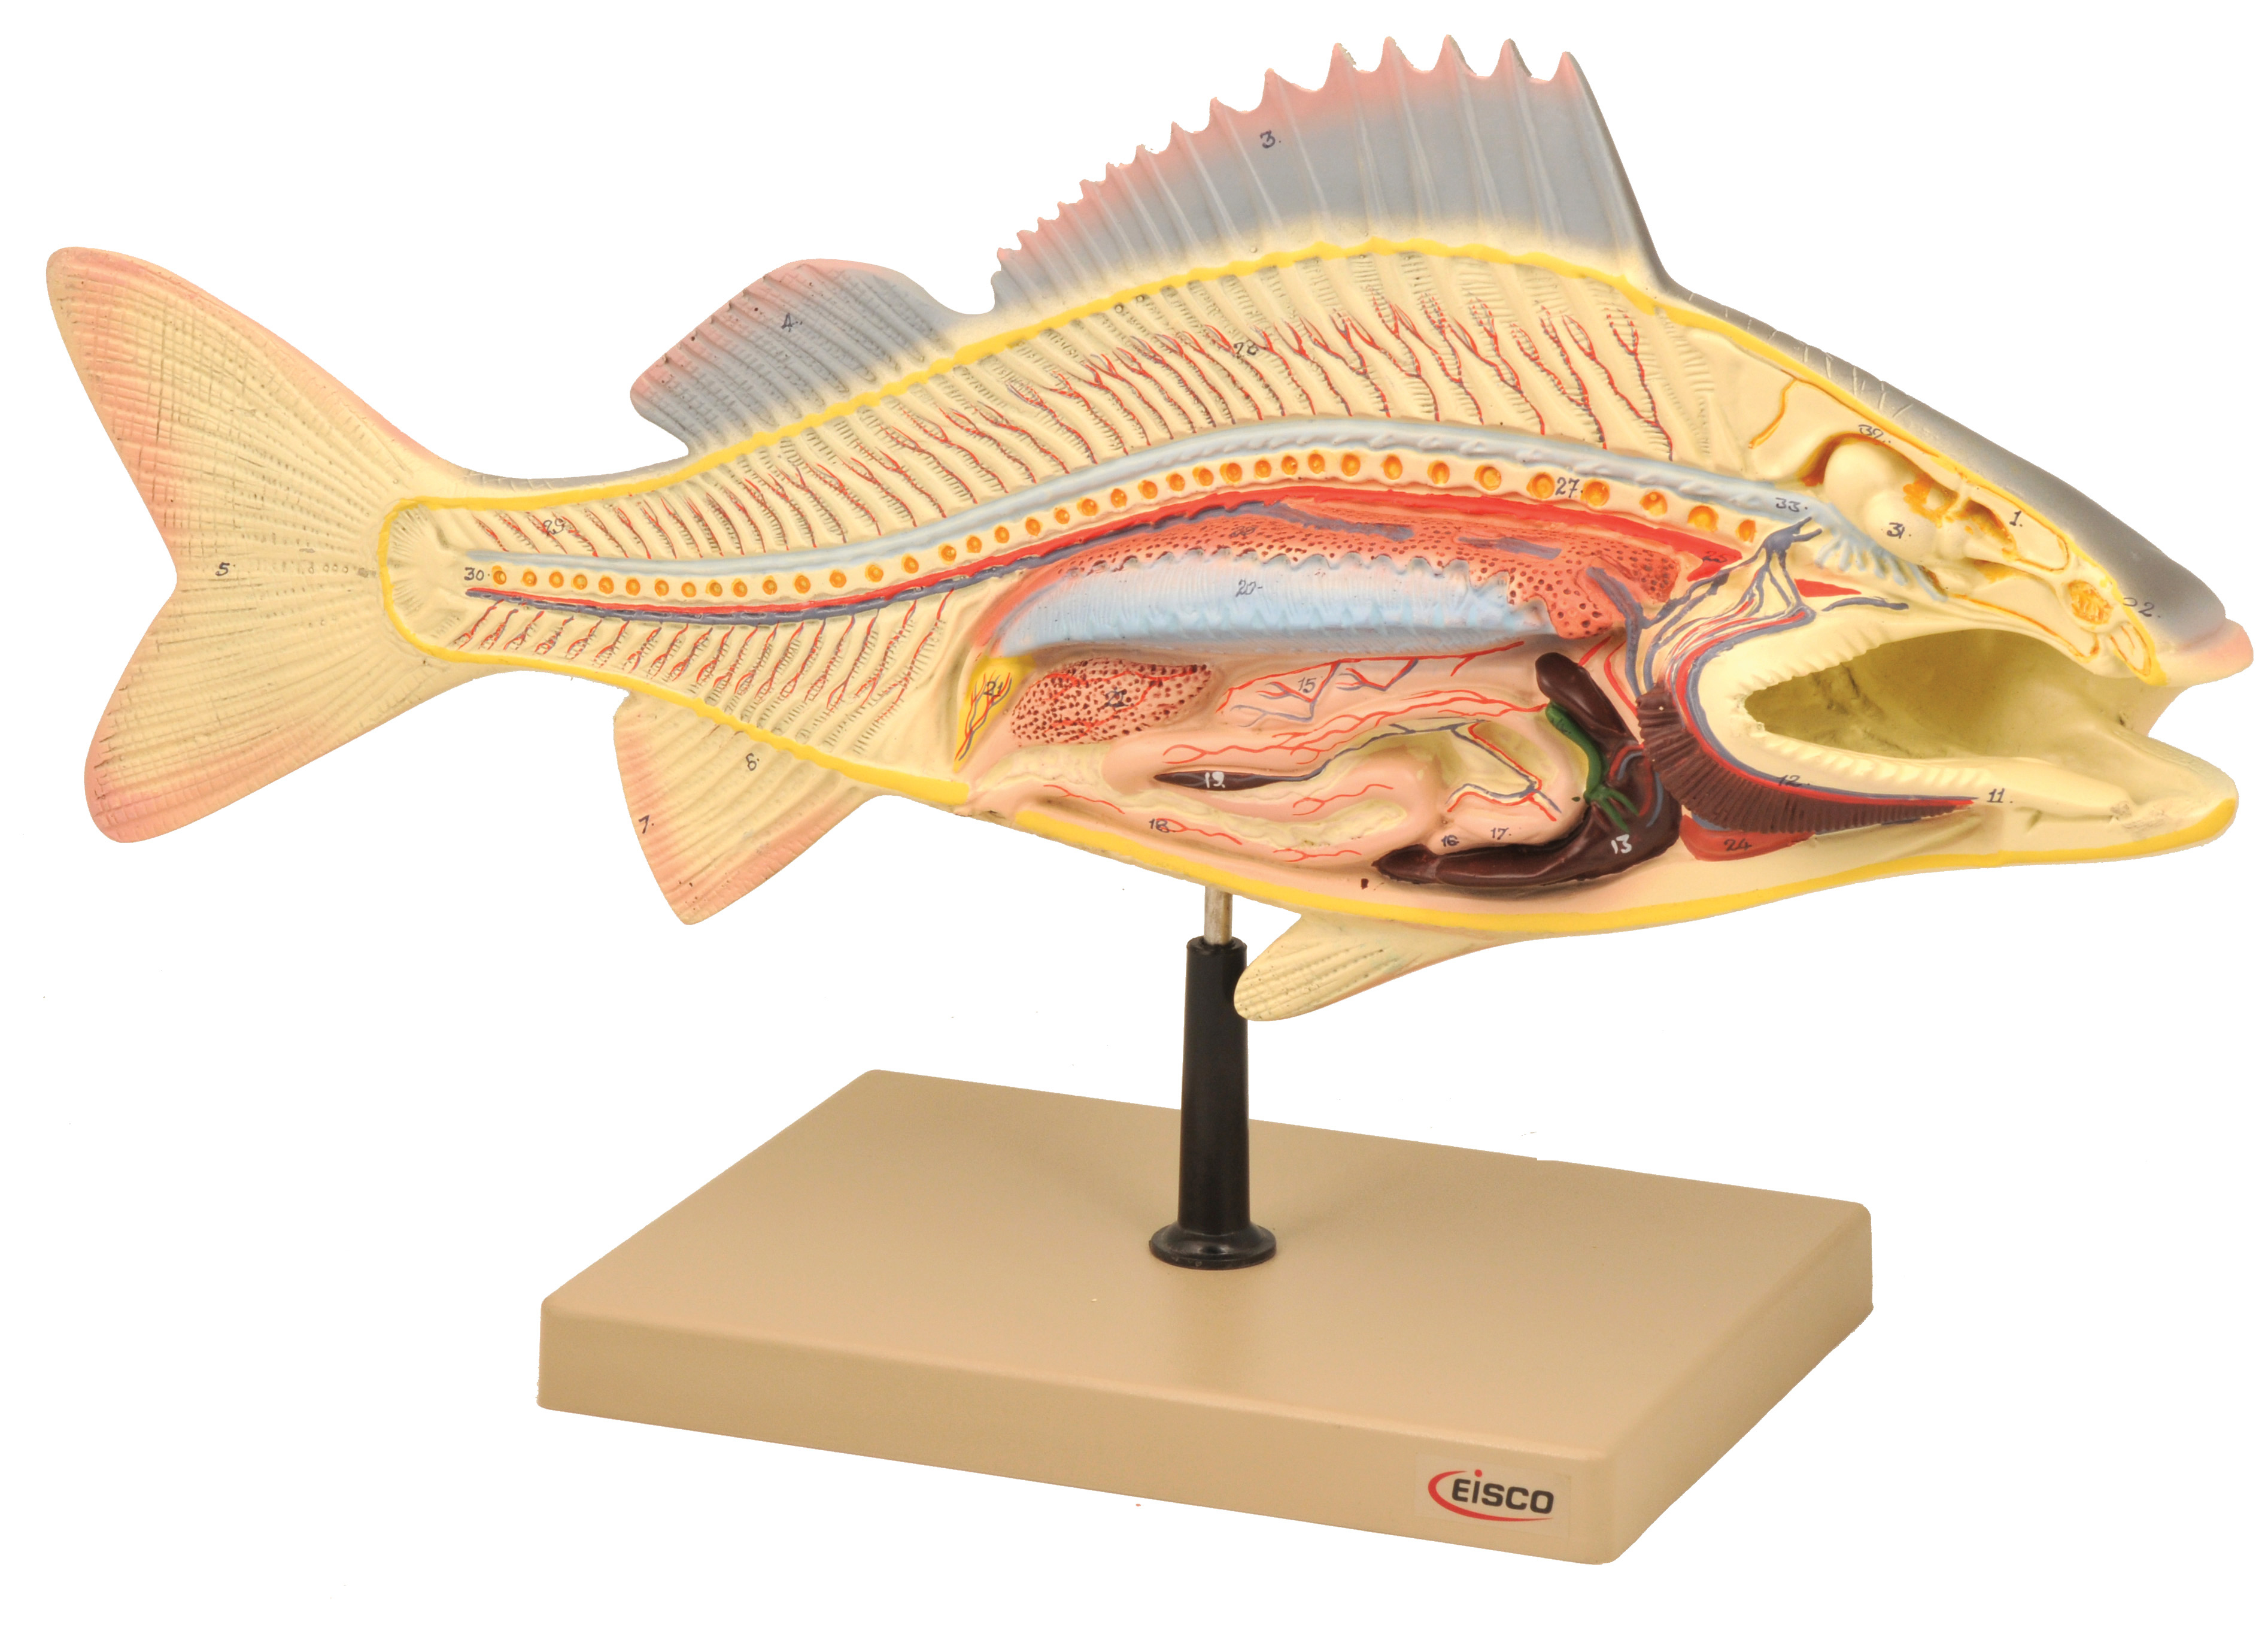 Eisco Labs Fish Dissection Model Perch Fish 19 5 Inches